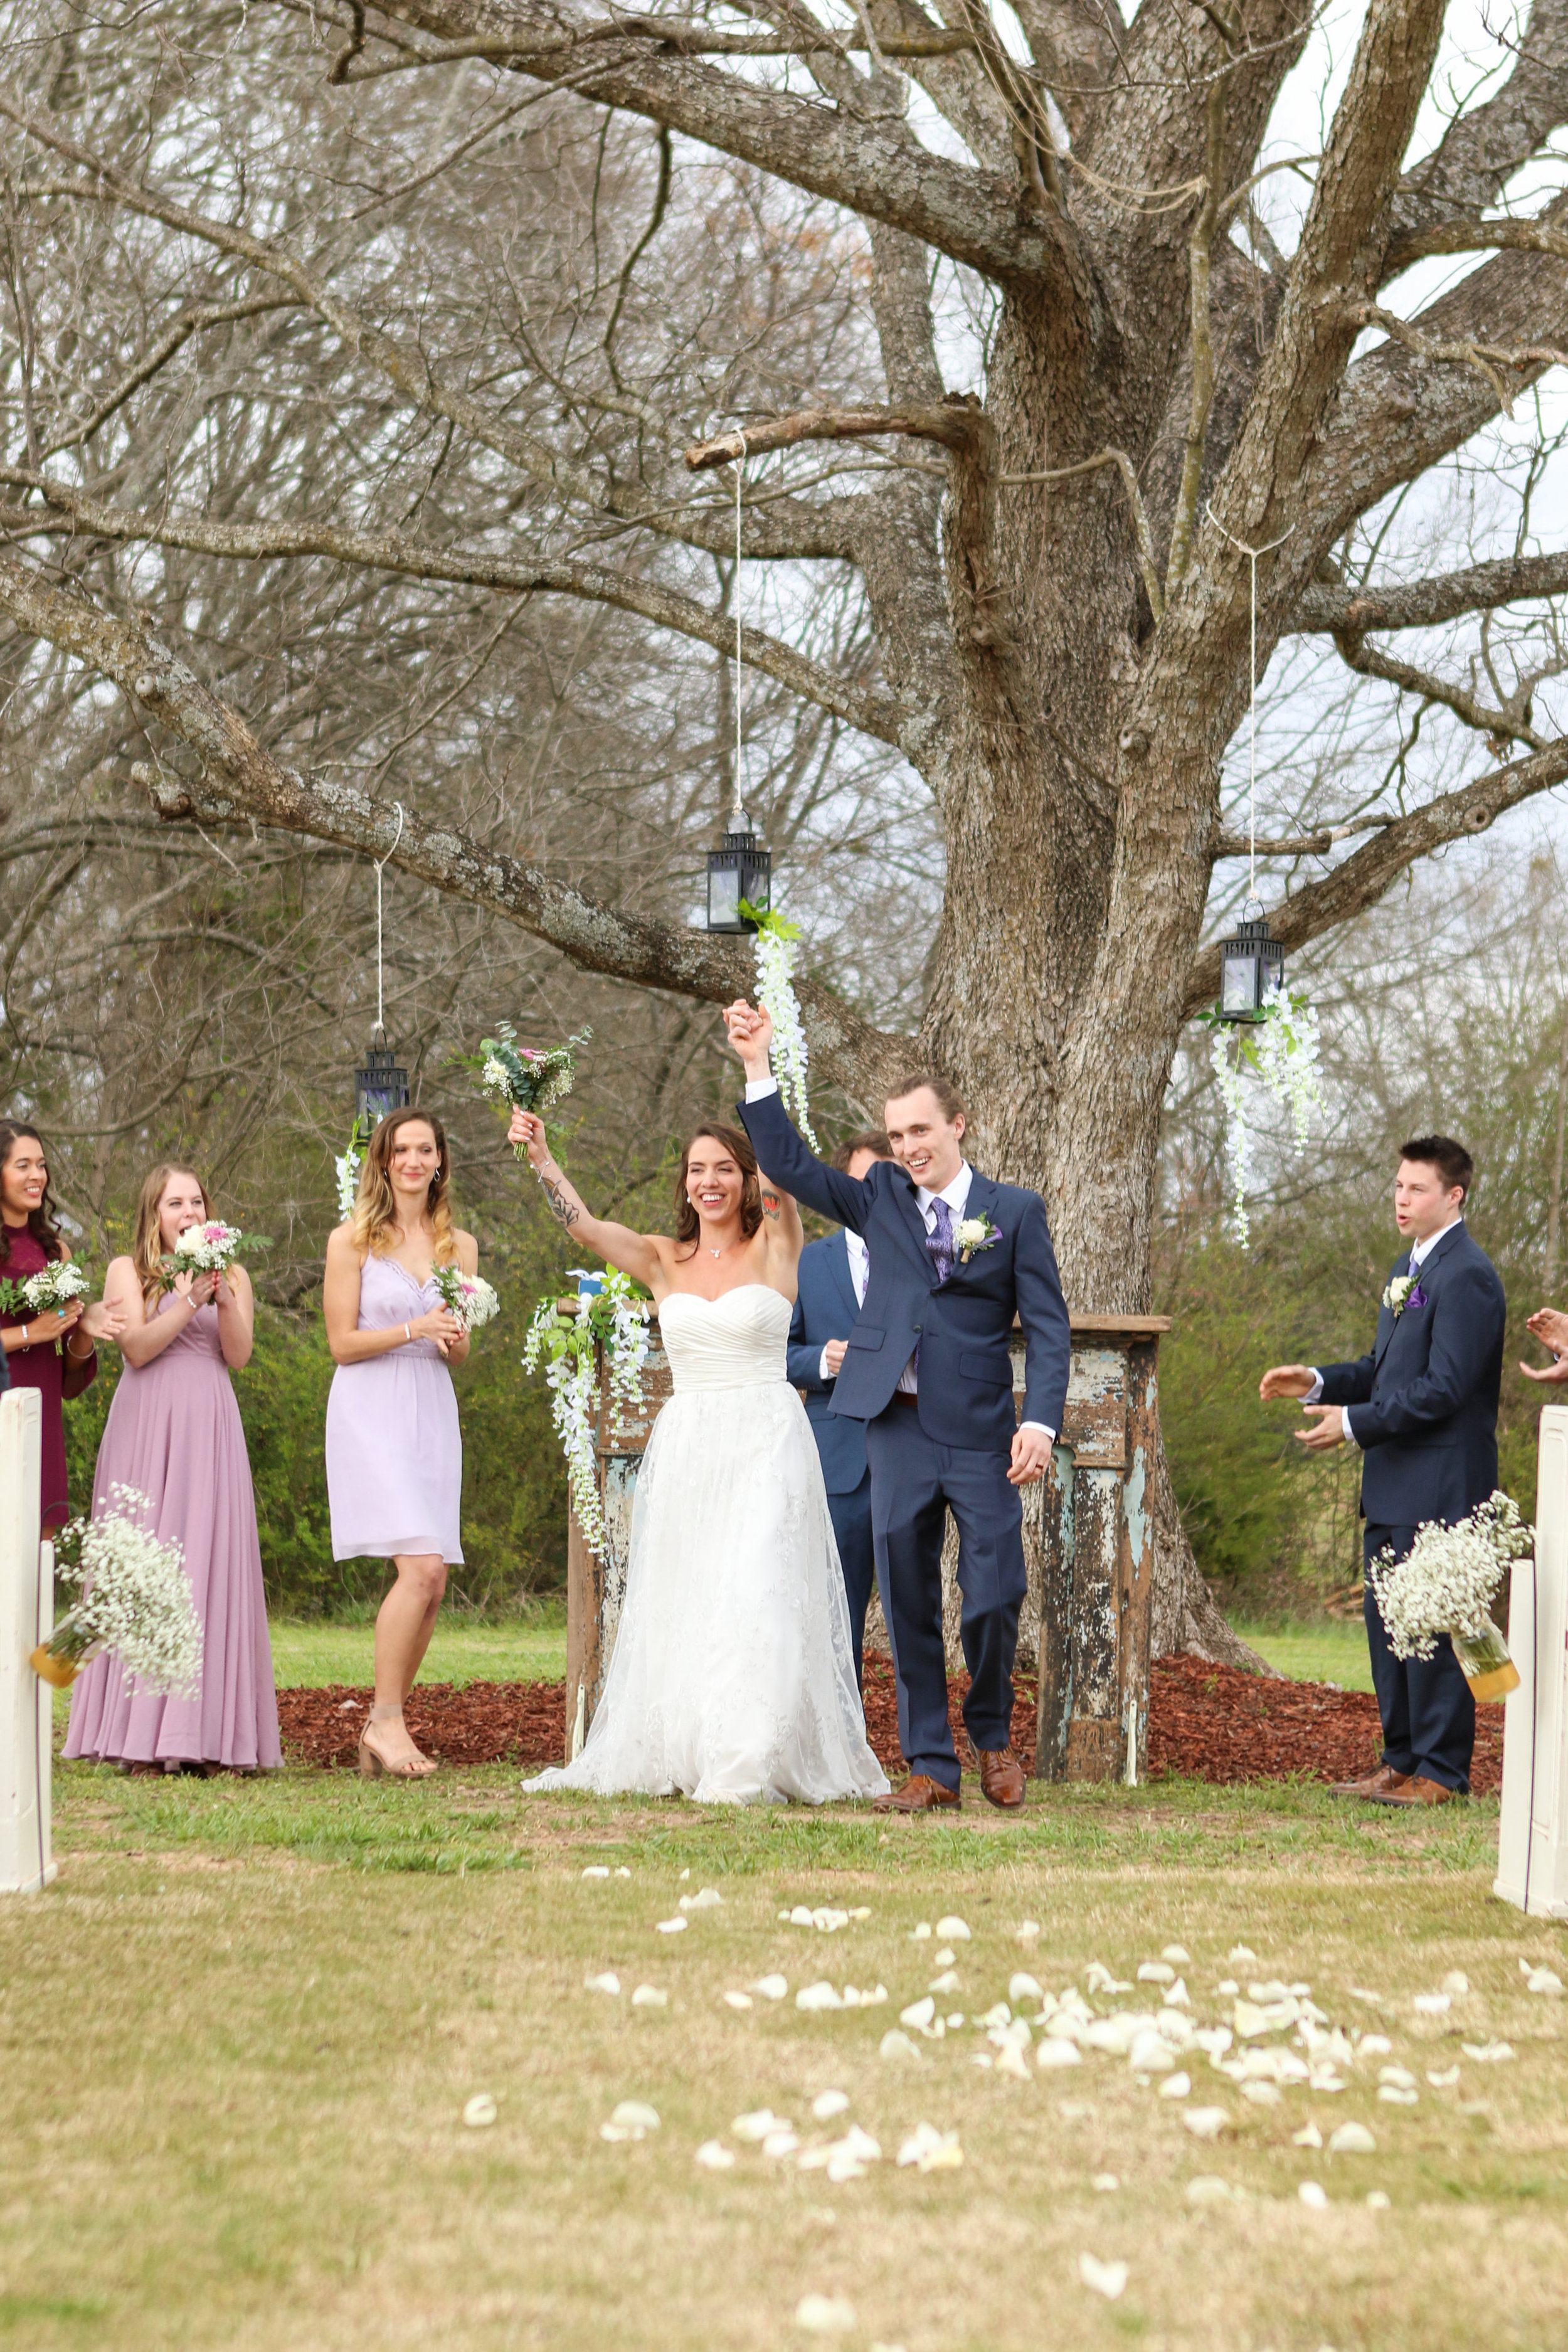 March wedding, photo by Emma Chasteen Photography